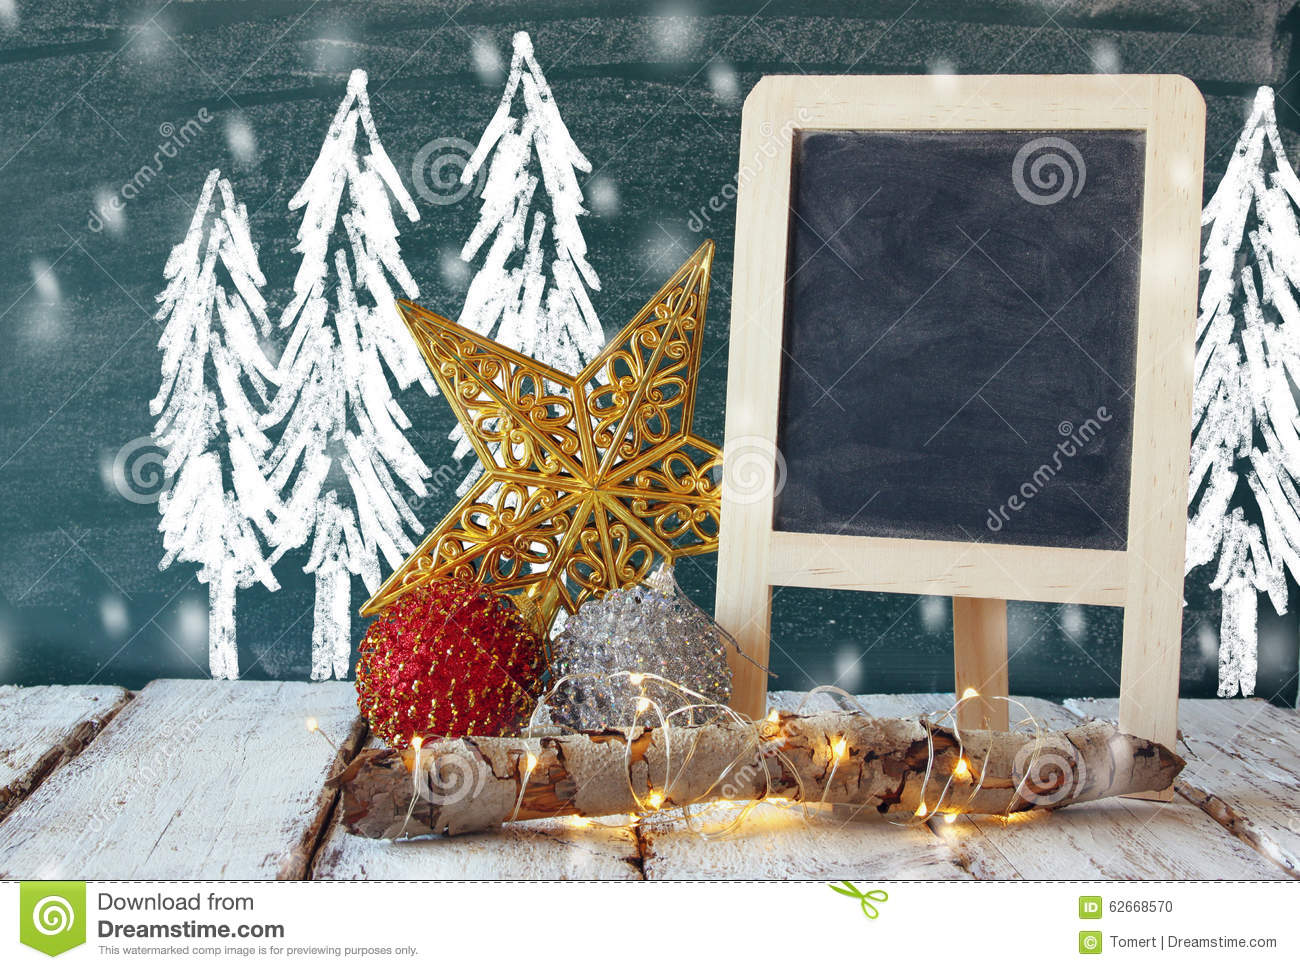 Image Of Christmas Decorations And Chalkboard Next To Blackboard